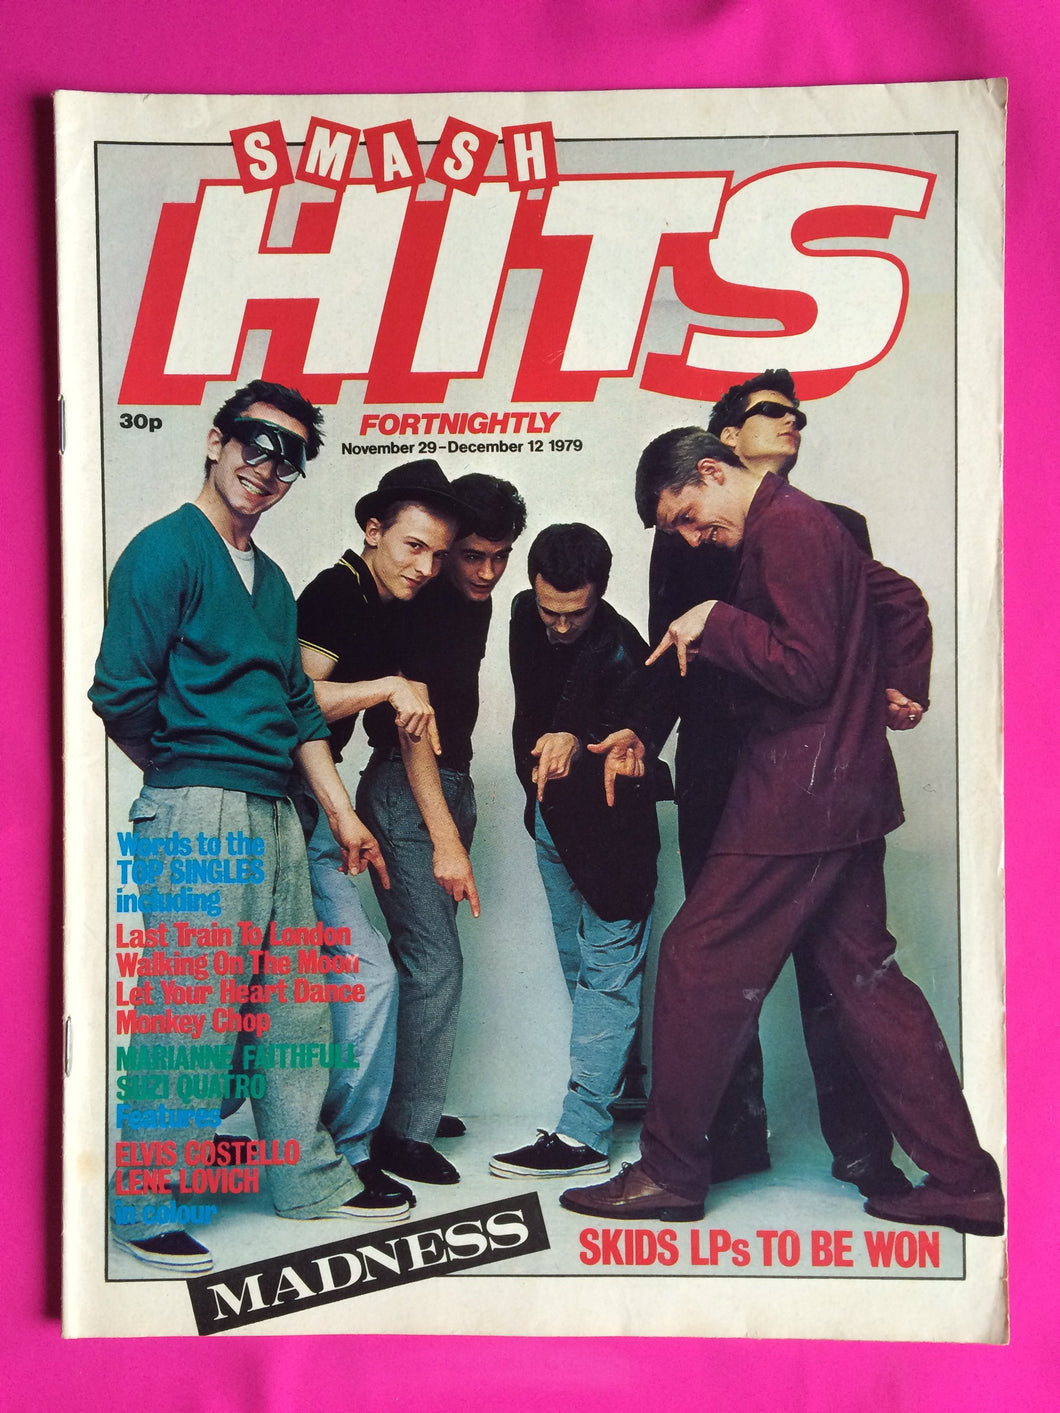 Smash Hits Magazine from Nov/Dec 1980 Featuring The Jam and other new wave acts